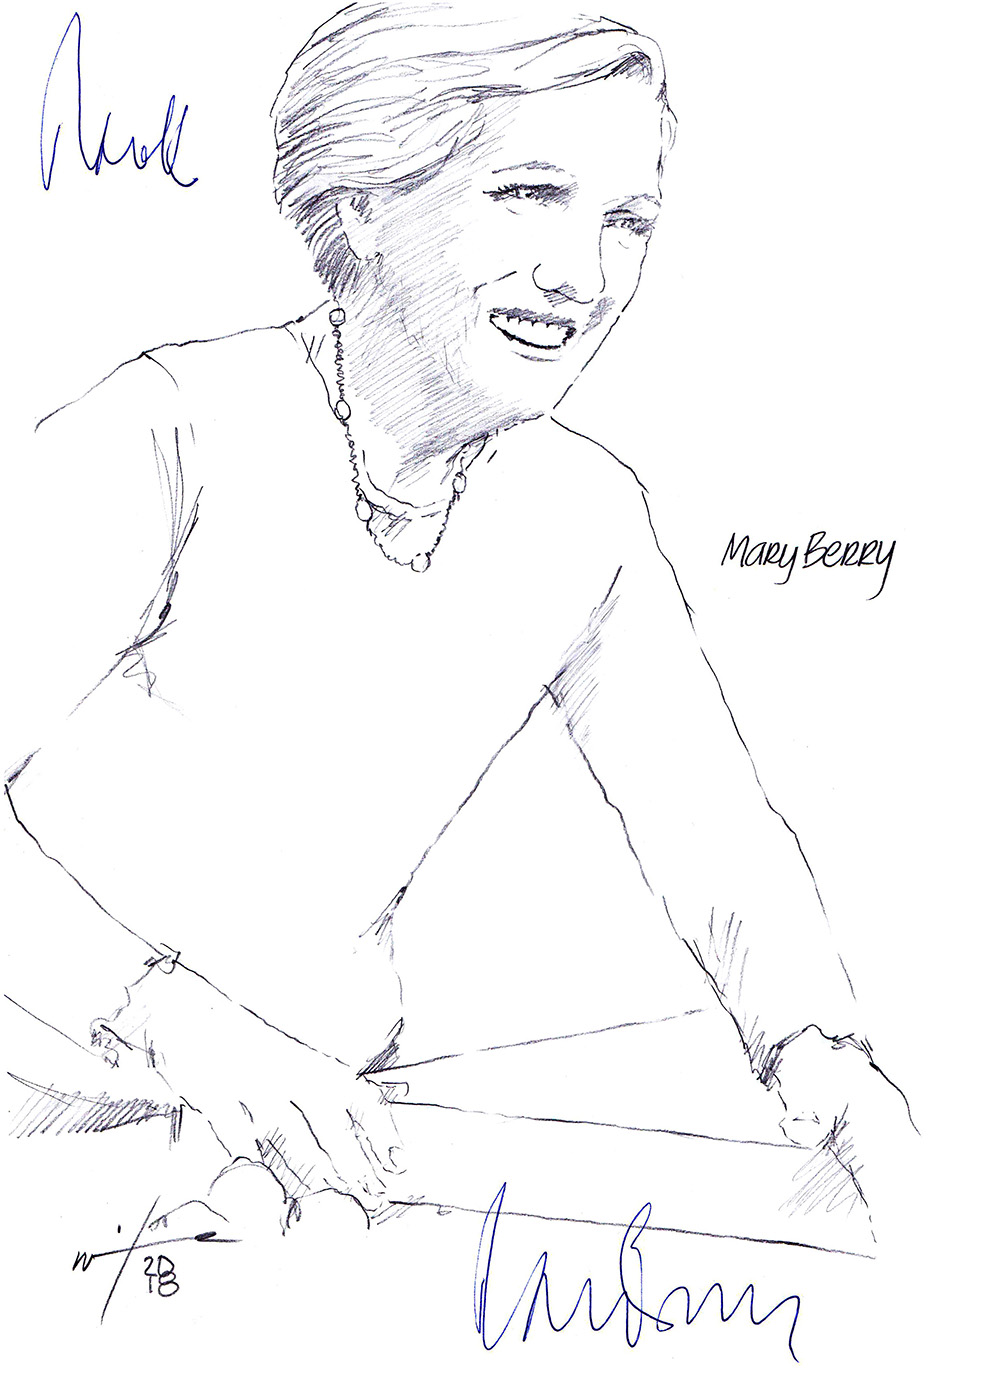 Autographed drawing of chef Mary Berry